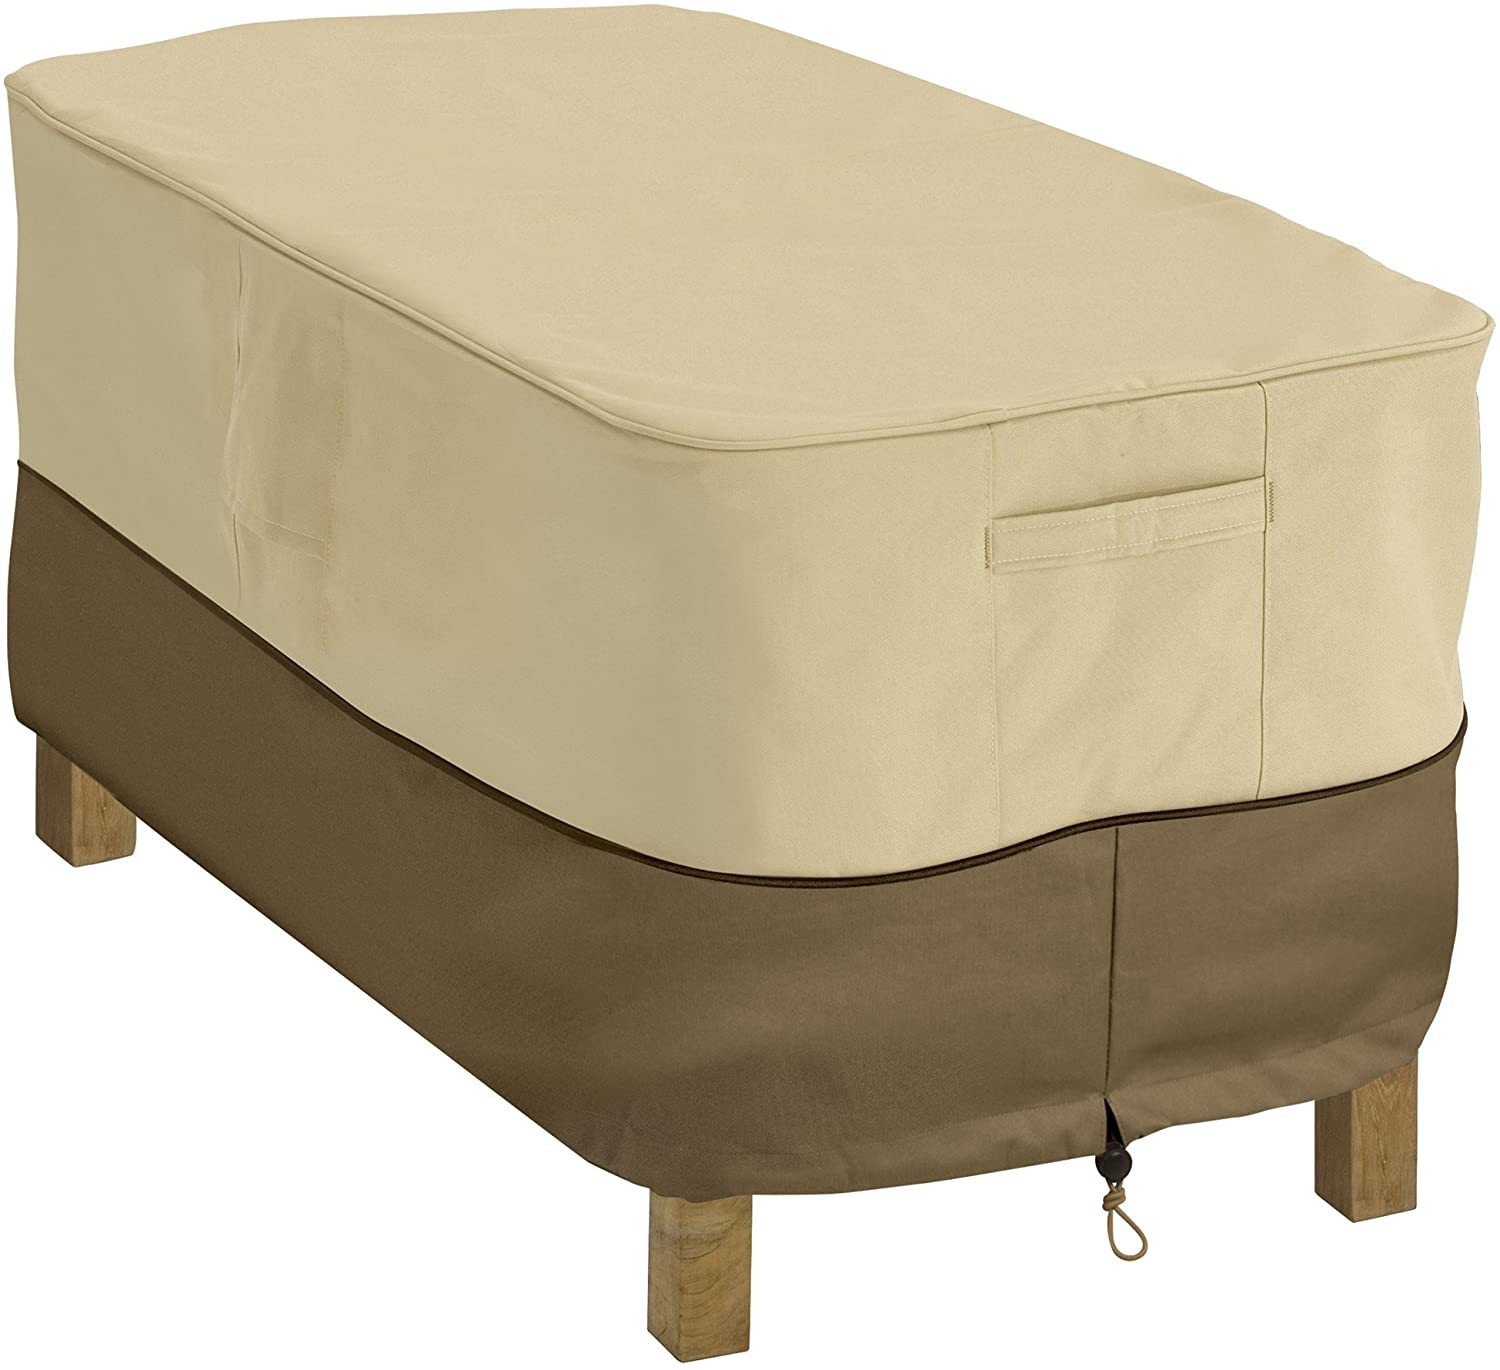 Classic Accessories 55-121-011501-00 Veranda Rectangular Patio Coffee Table Cover, Pebble